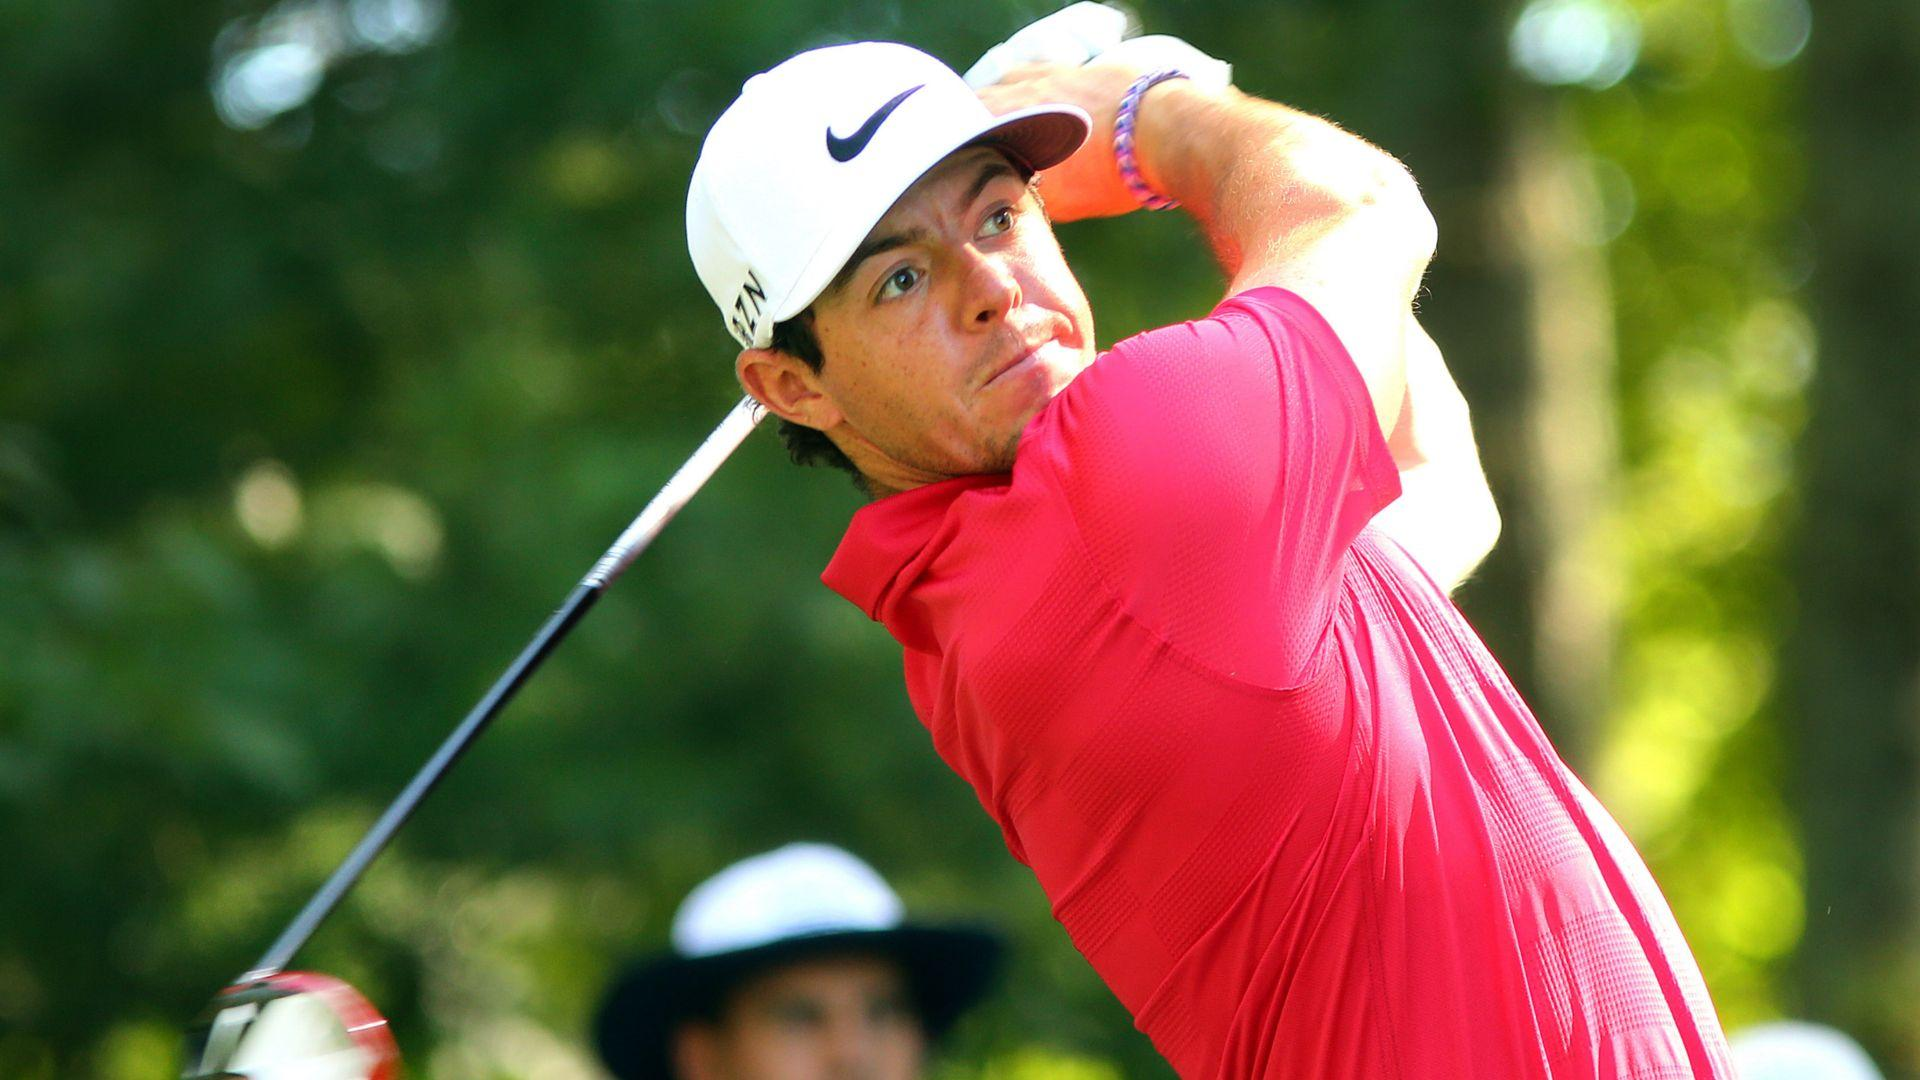 Rory McIlroy Gives Away Nike Driver On Social Media